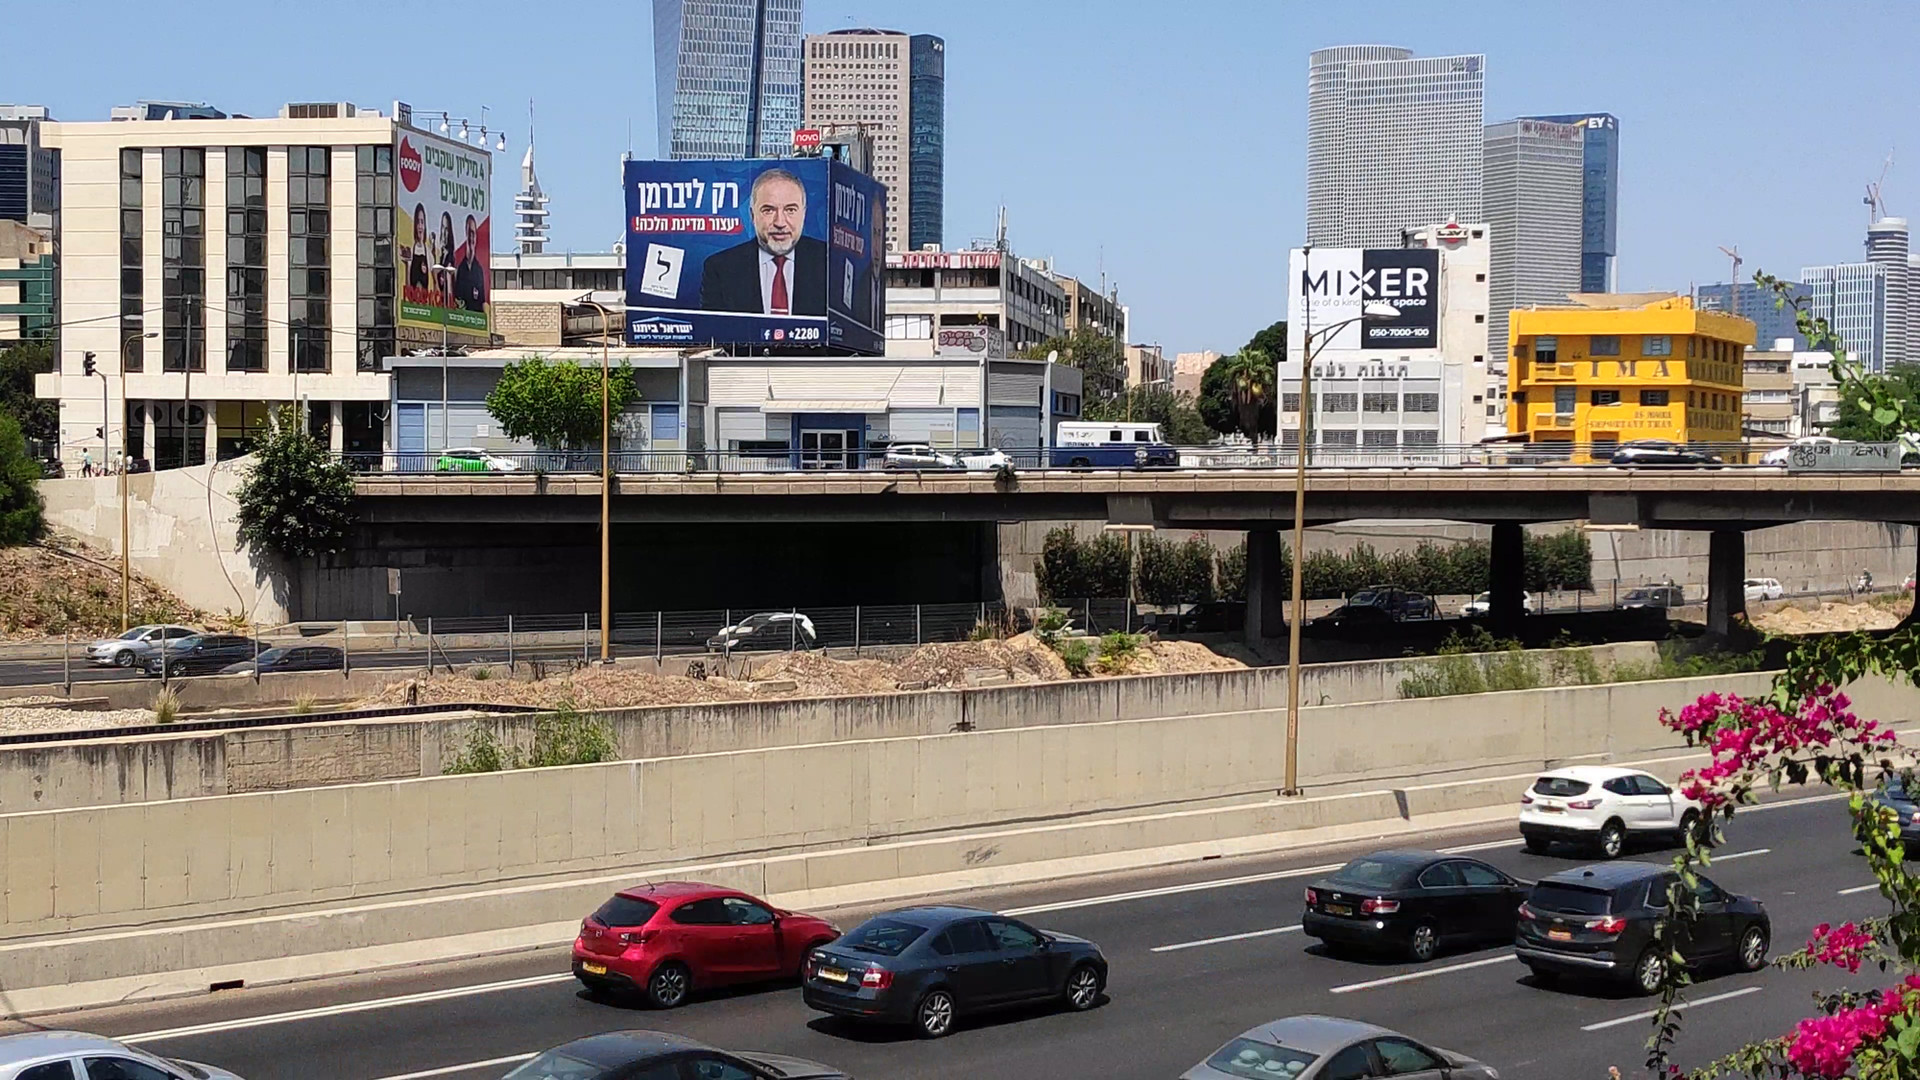 Wall scape outdoor advertising